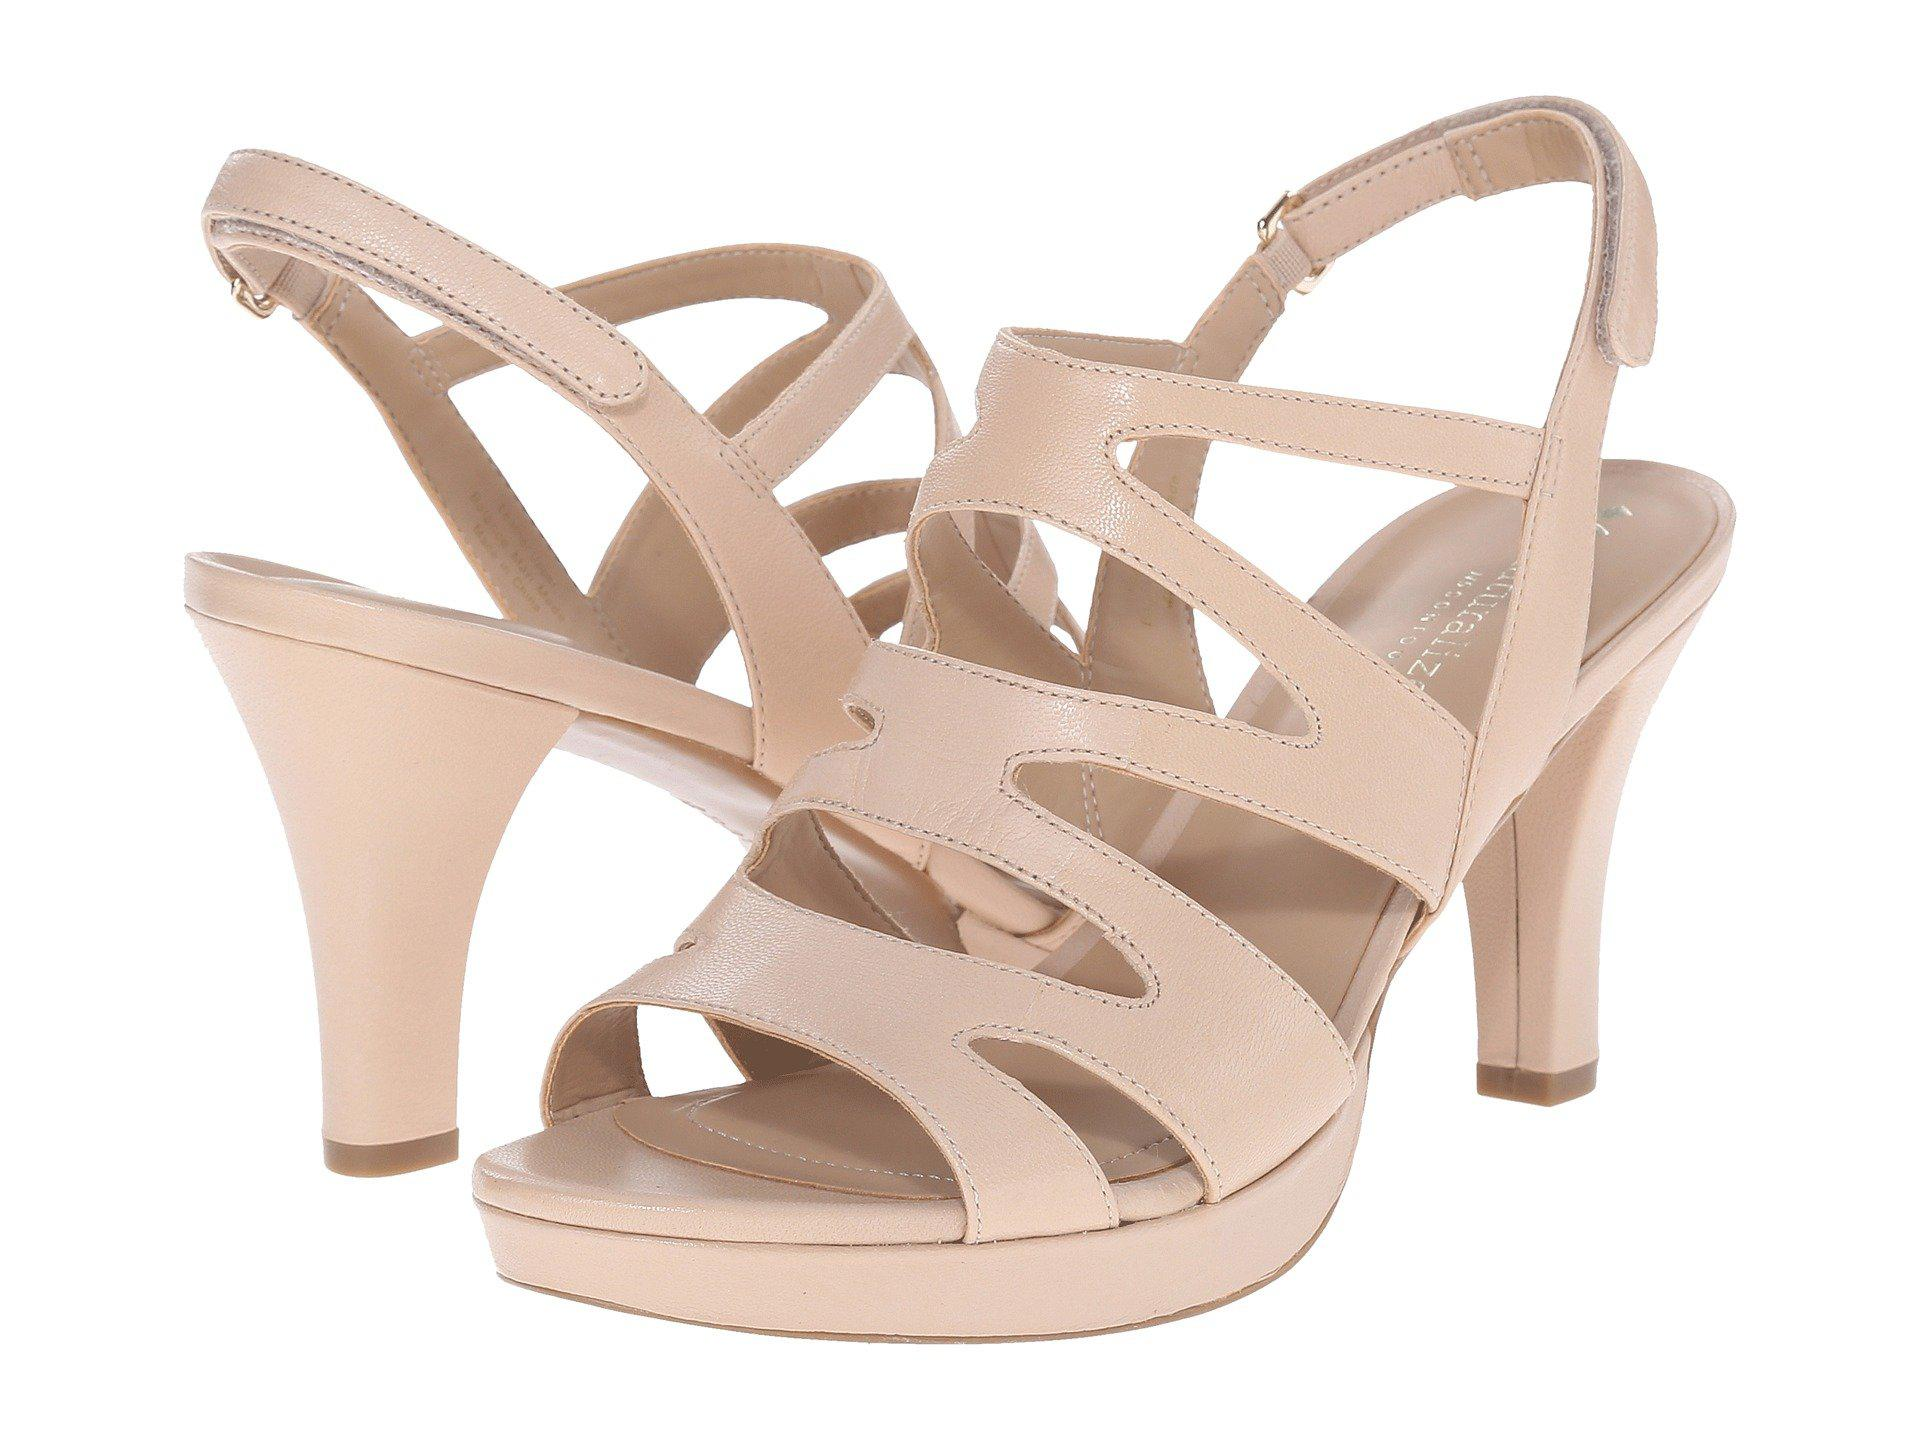 2916d7325e2 Lyst - Naturalizer Pressley (taupe Leather) High Heels in Brown